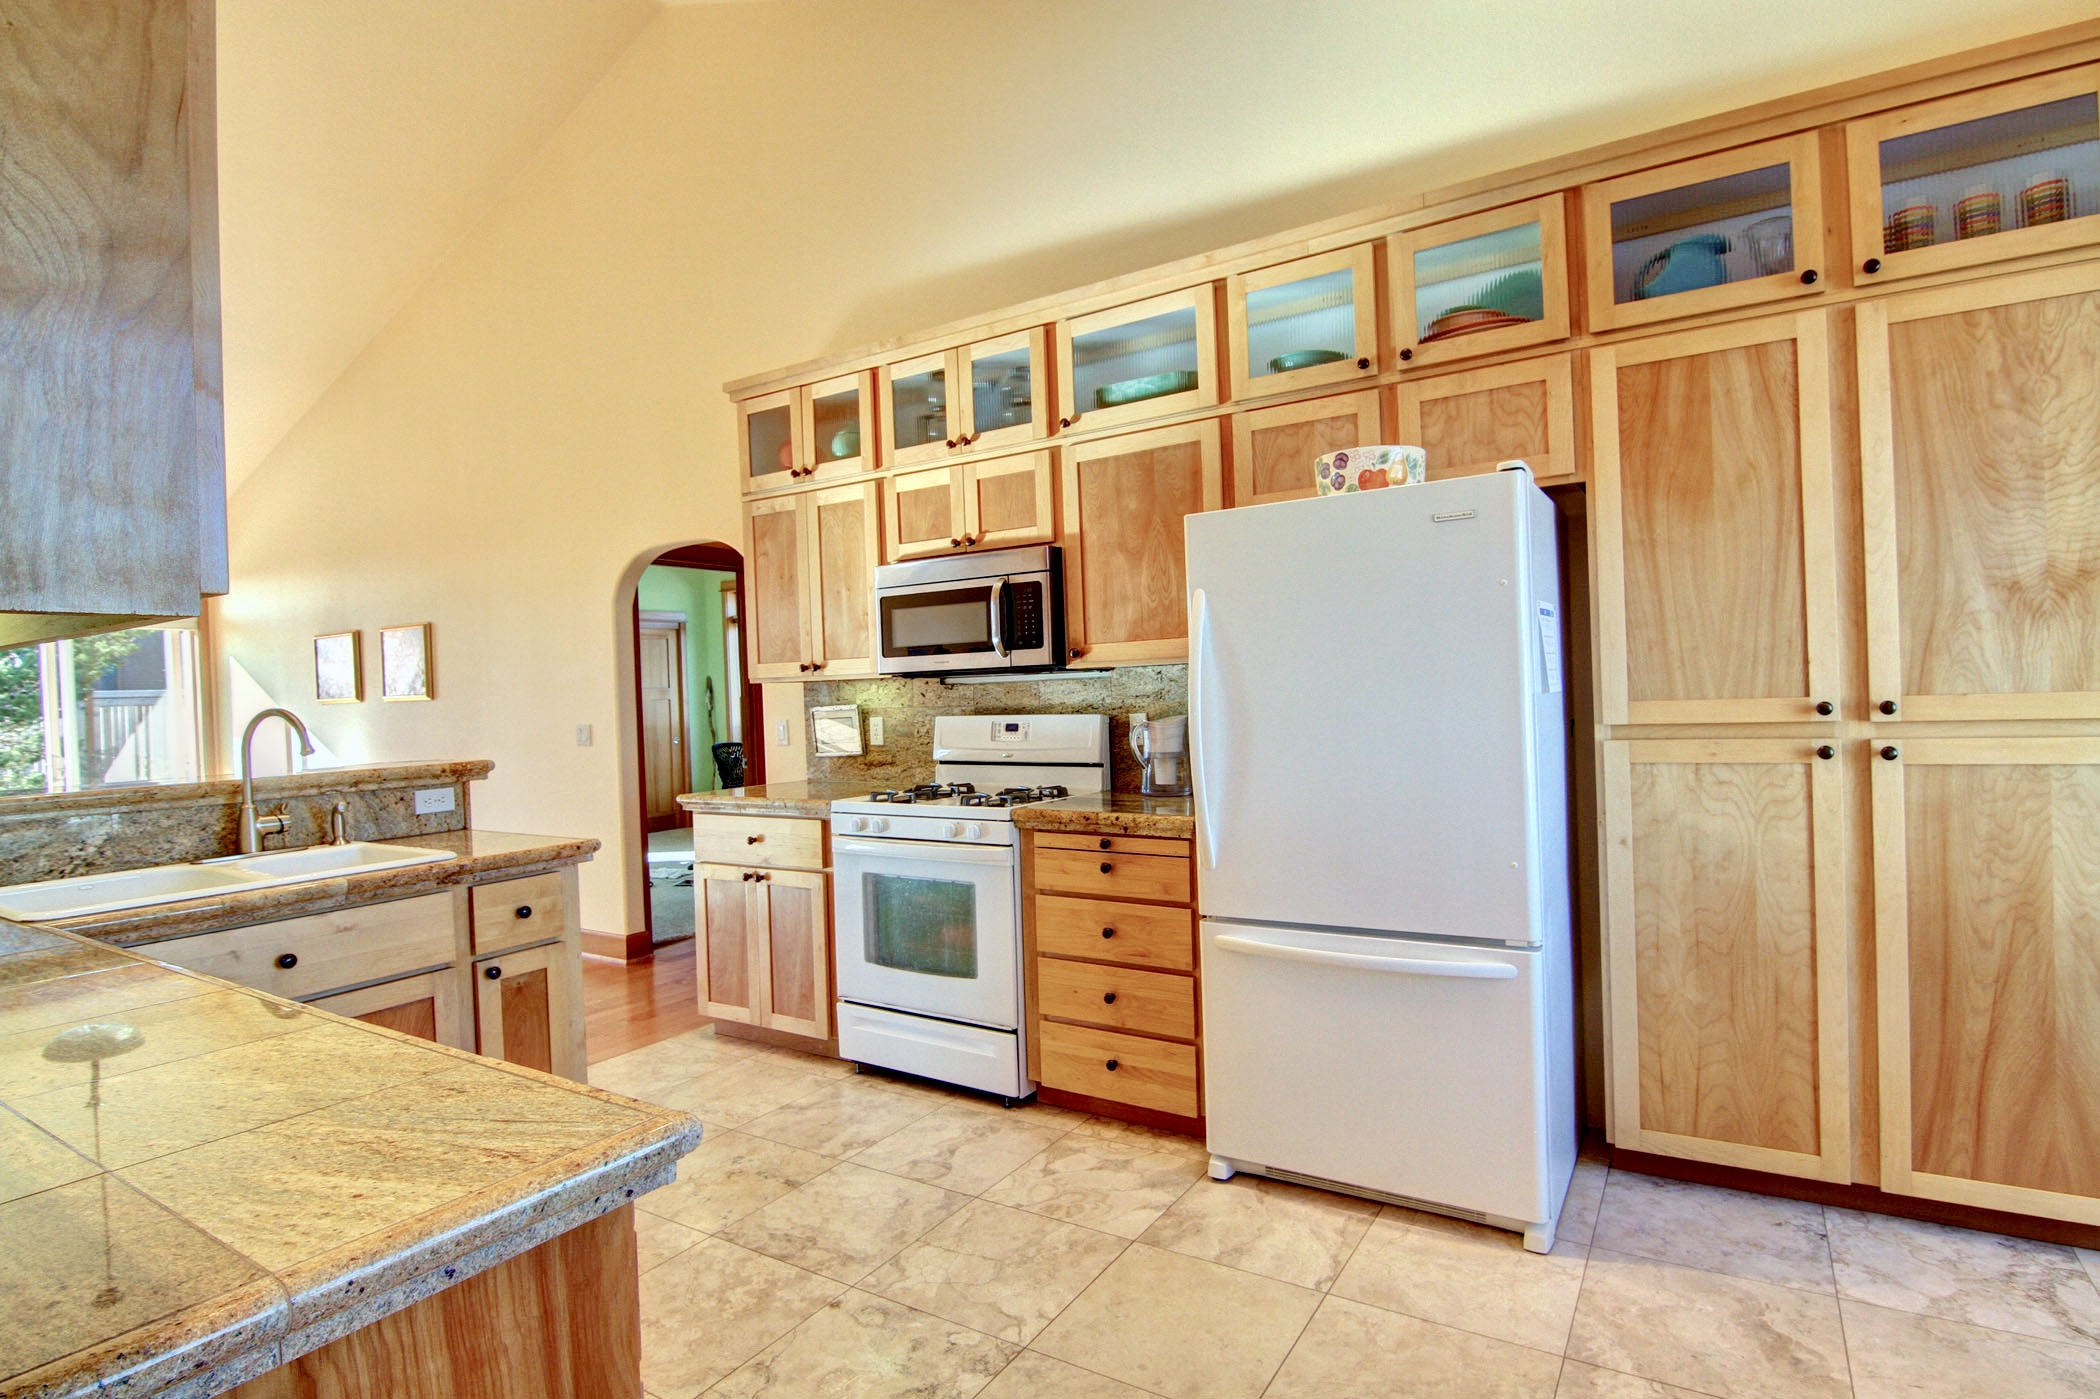 Spacious kitchen with beautiful custom cabinetry.